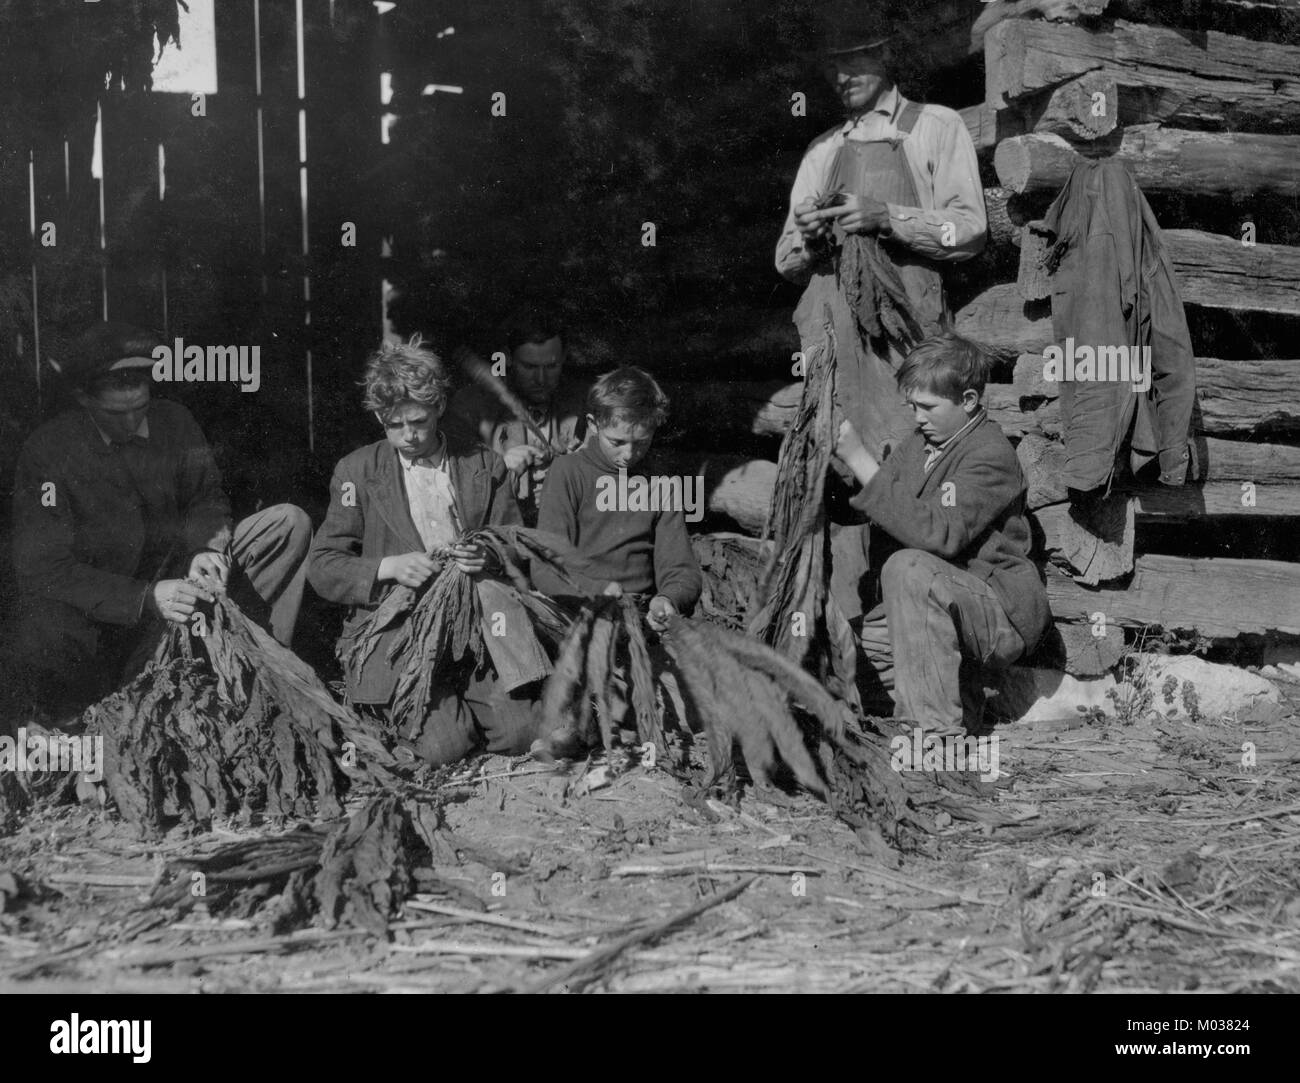 Family of J.H. Burch, stripping tobacco - Stock Image